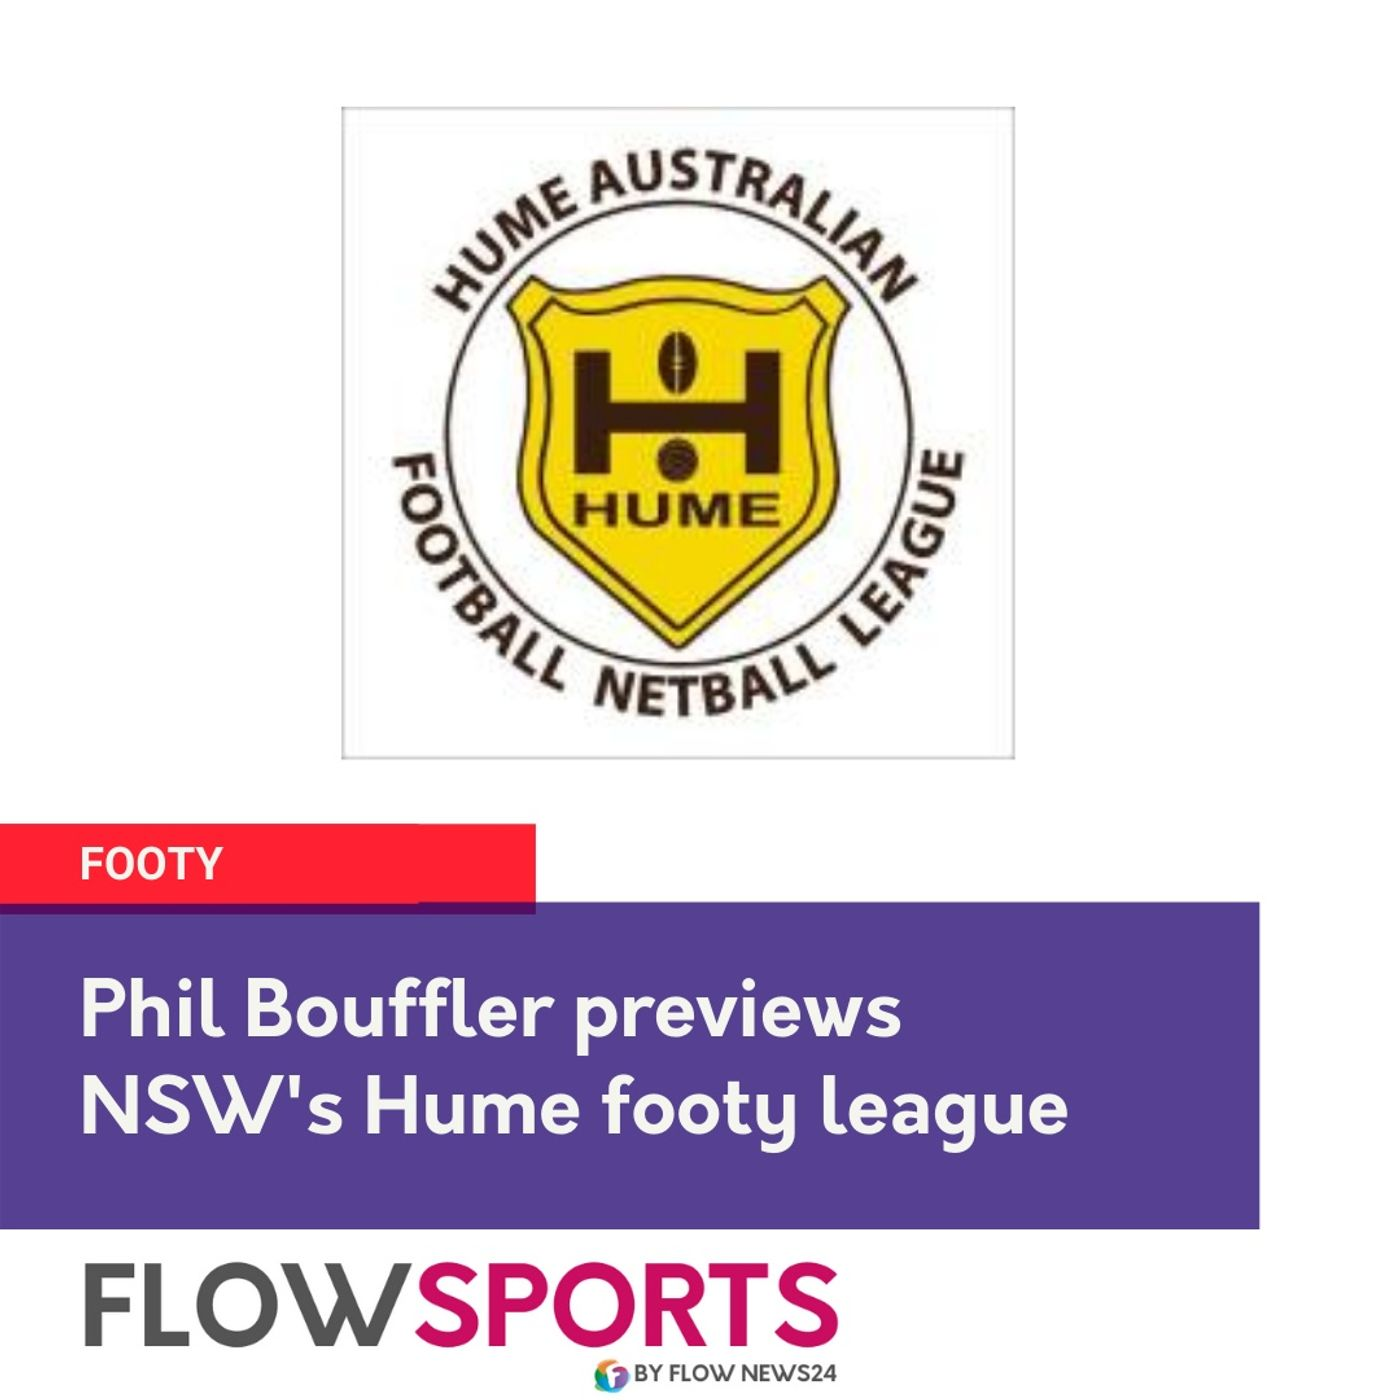 Phil Bouffler reviews and previews Hume Footy